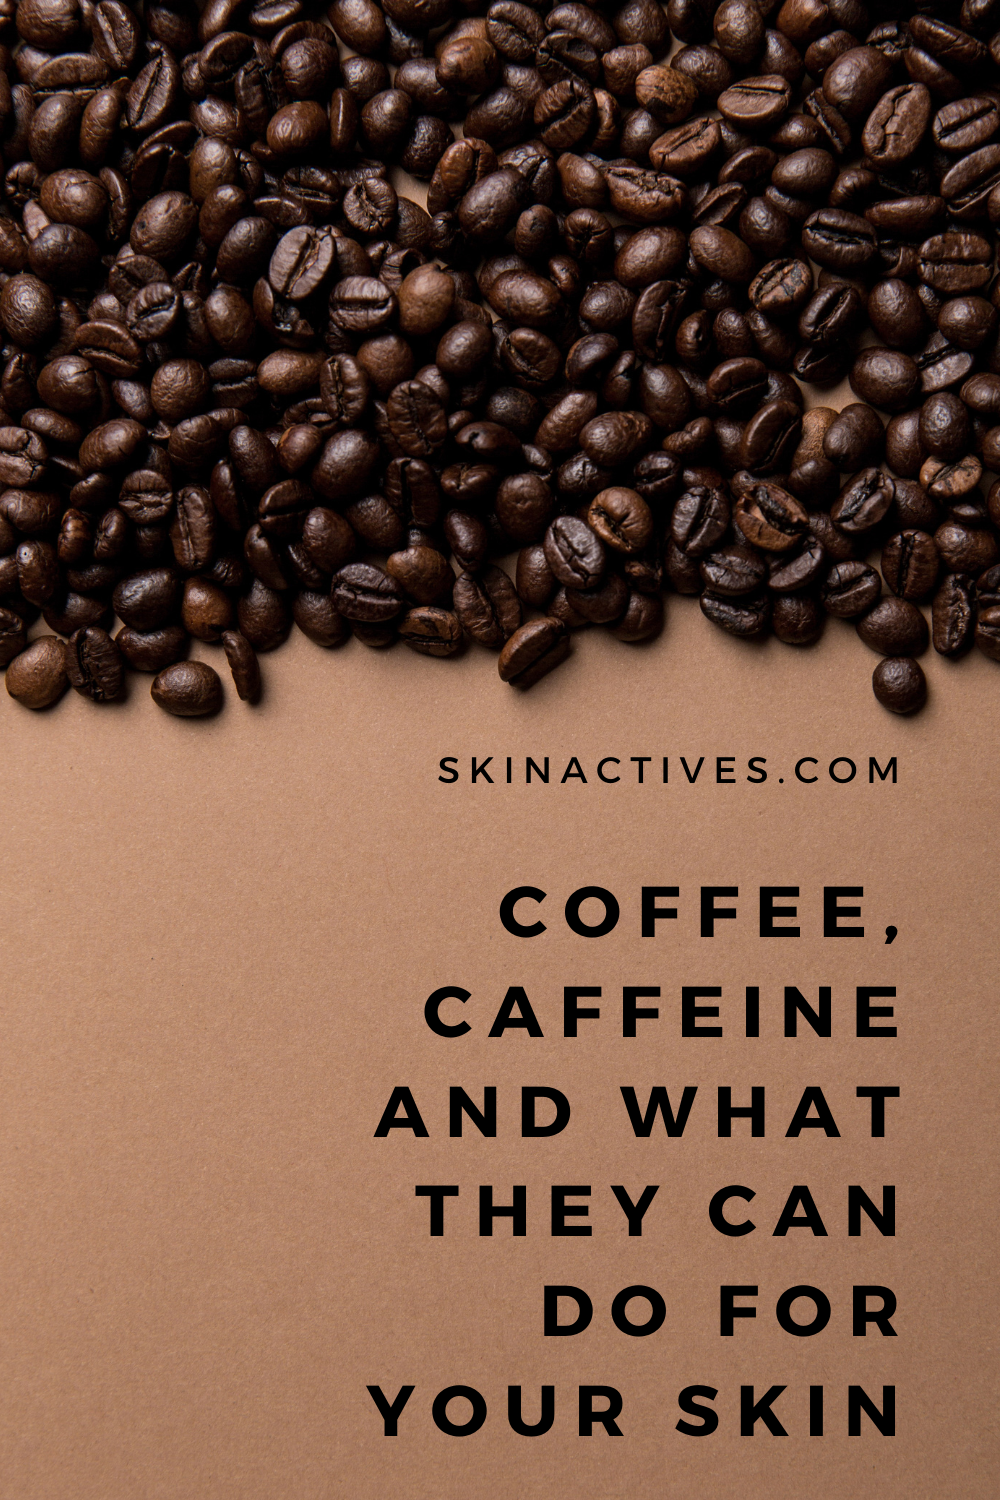 Caffeine Coffee And What They Can Do For Your Skin Skin Actives In 2020 Skin Skin Active Caffeine